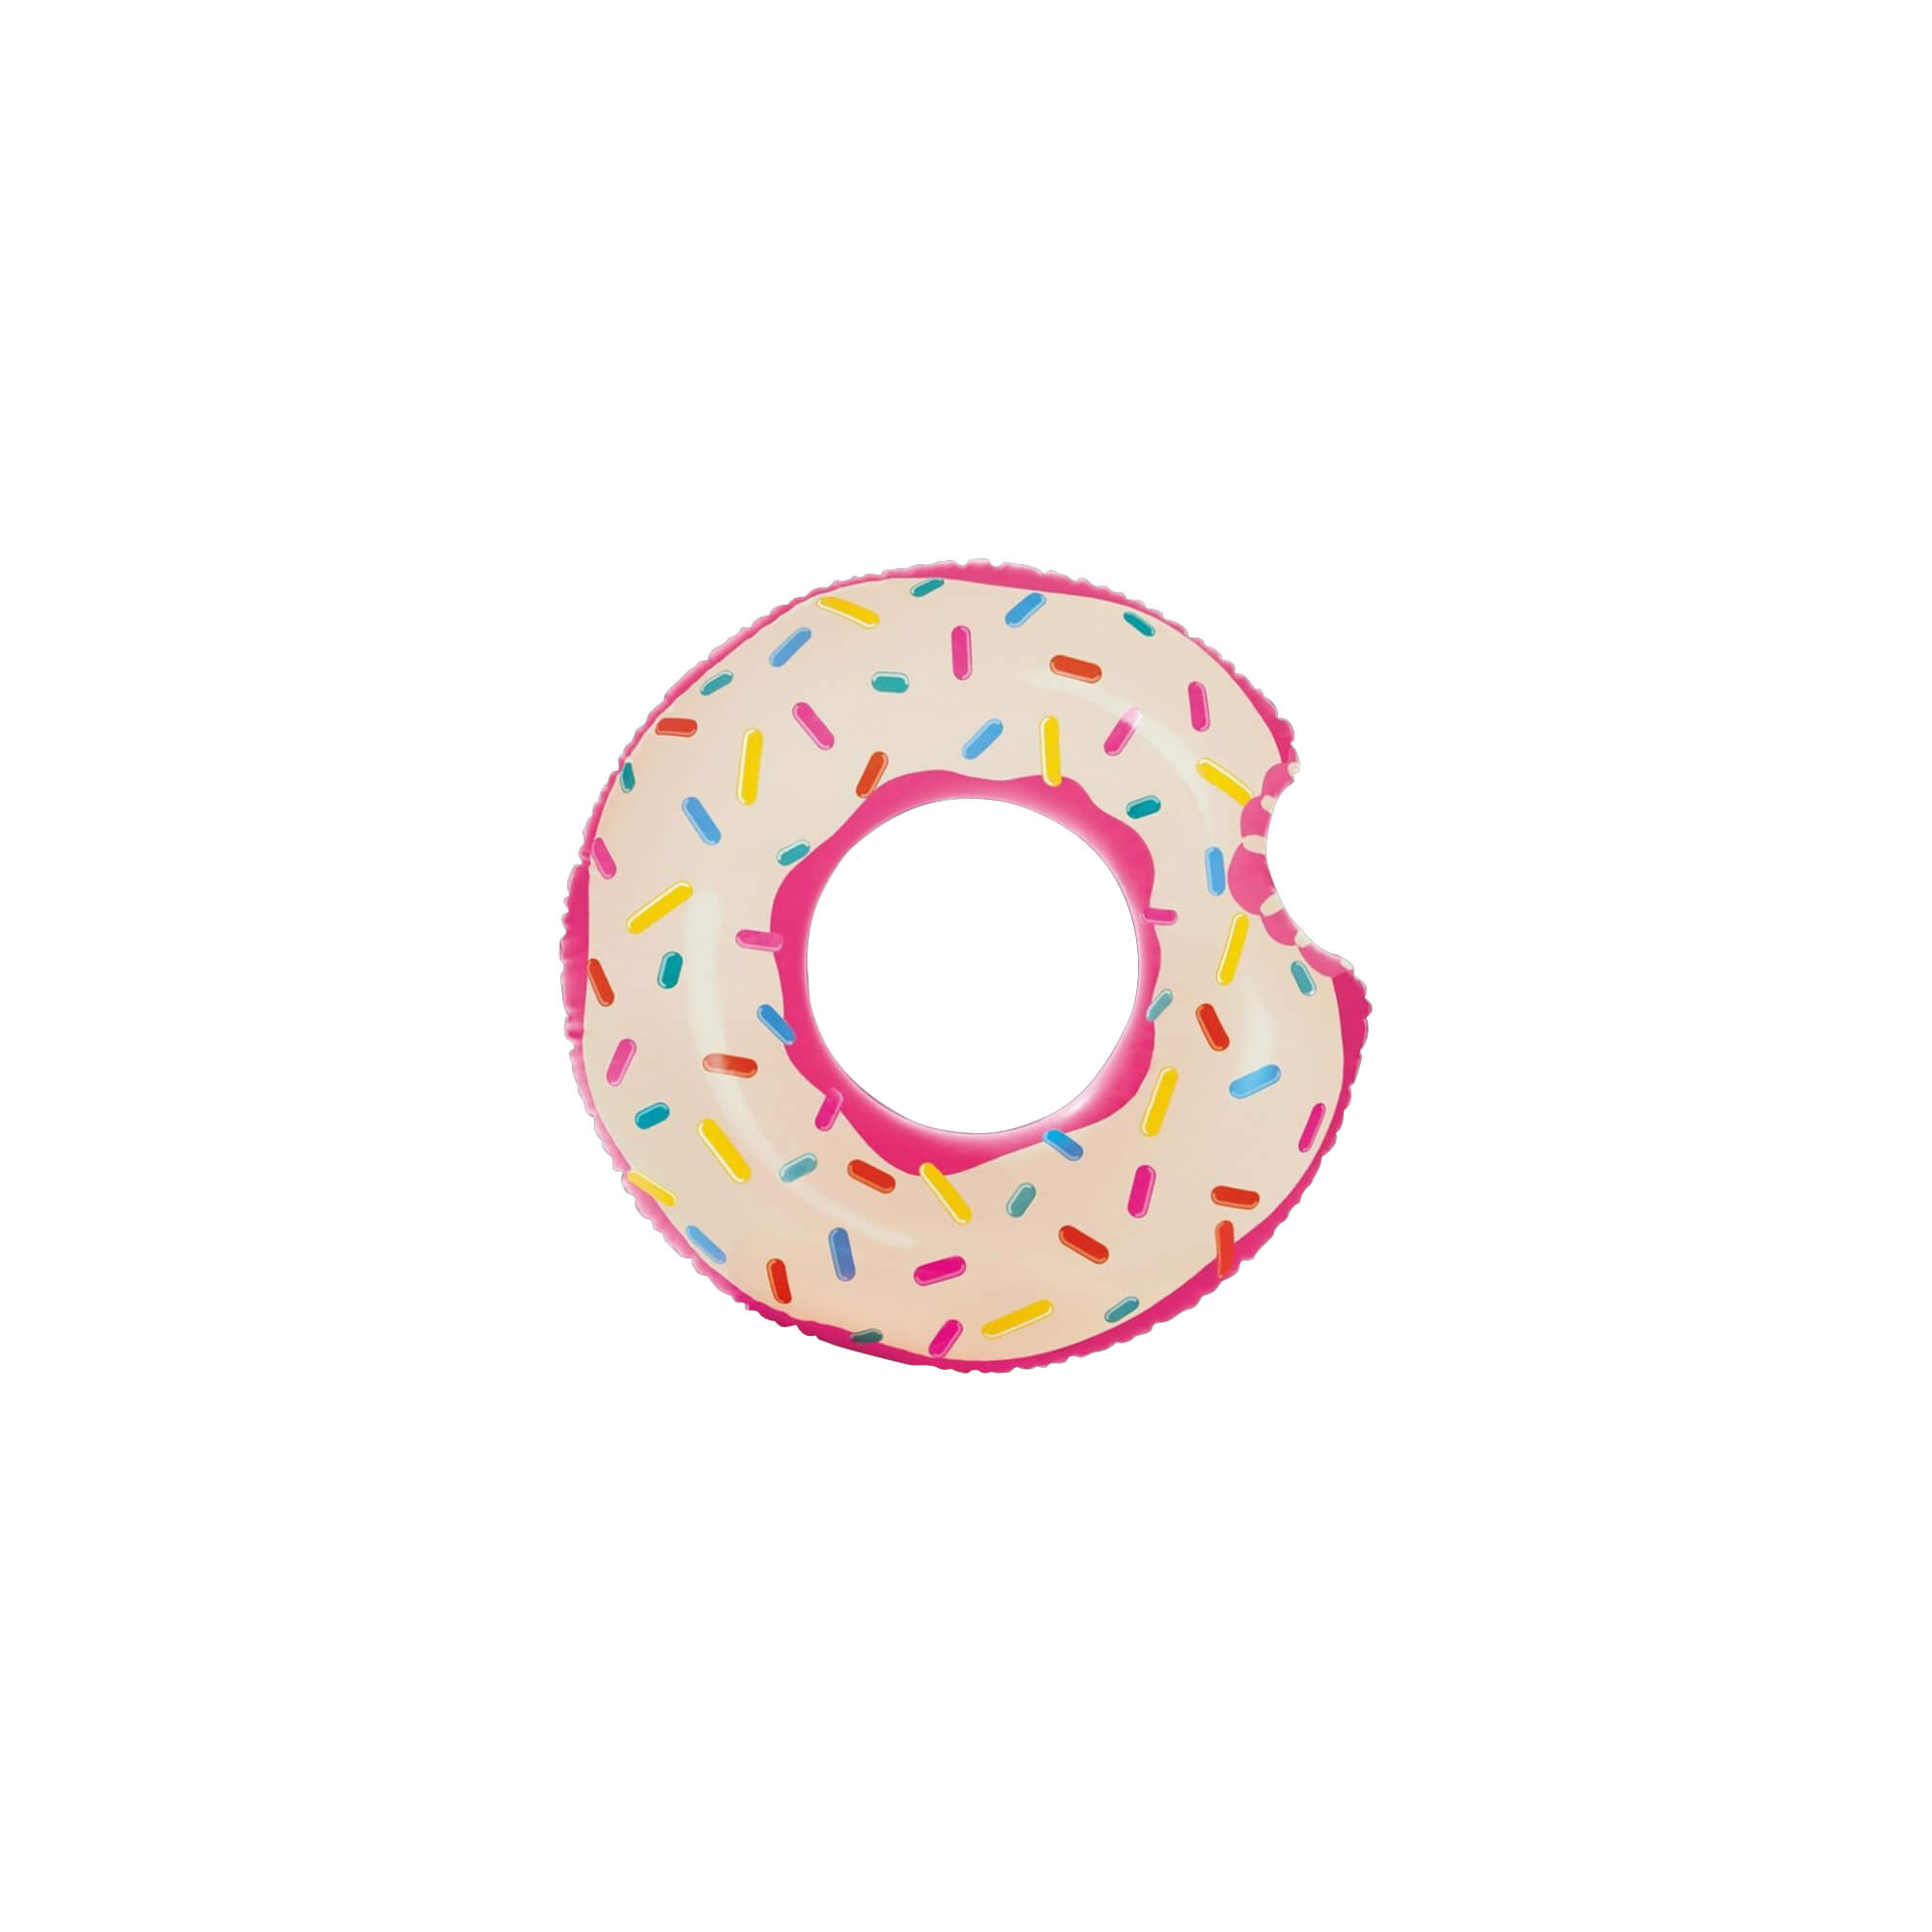 DONUT imagine